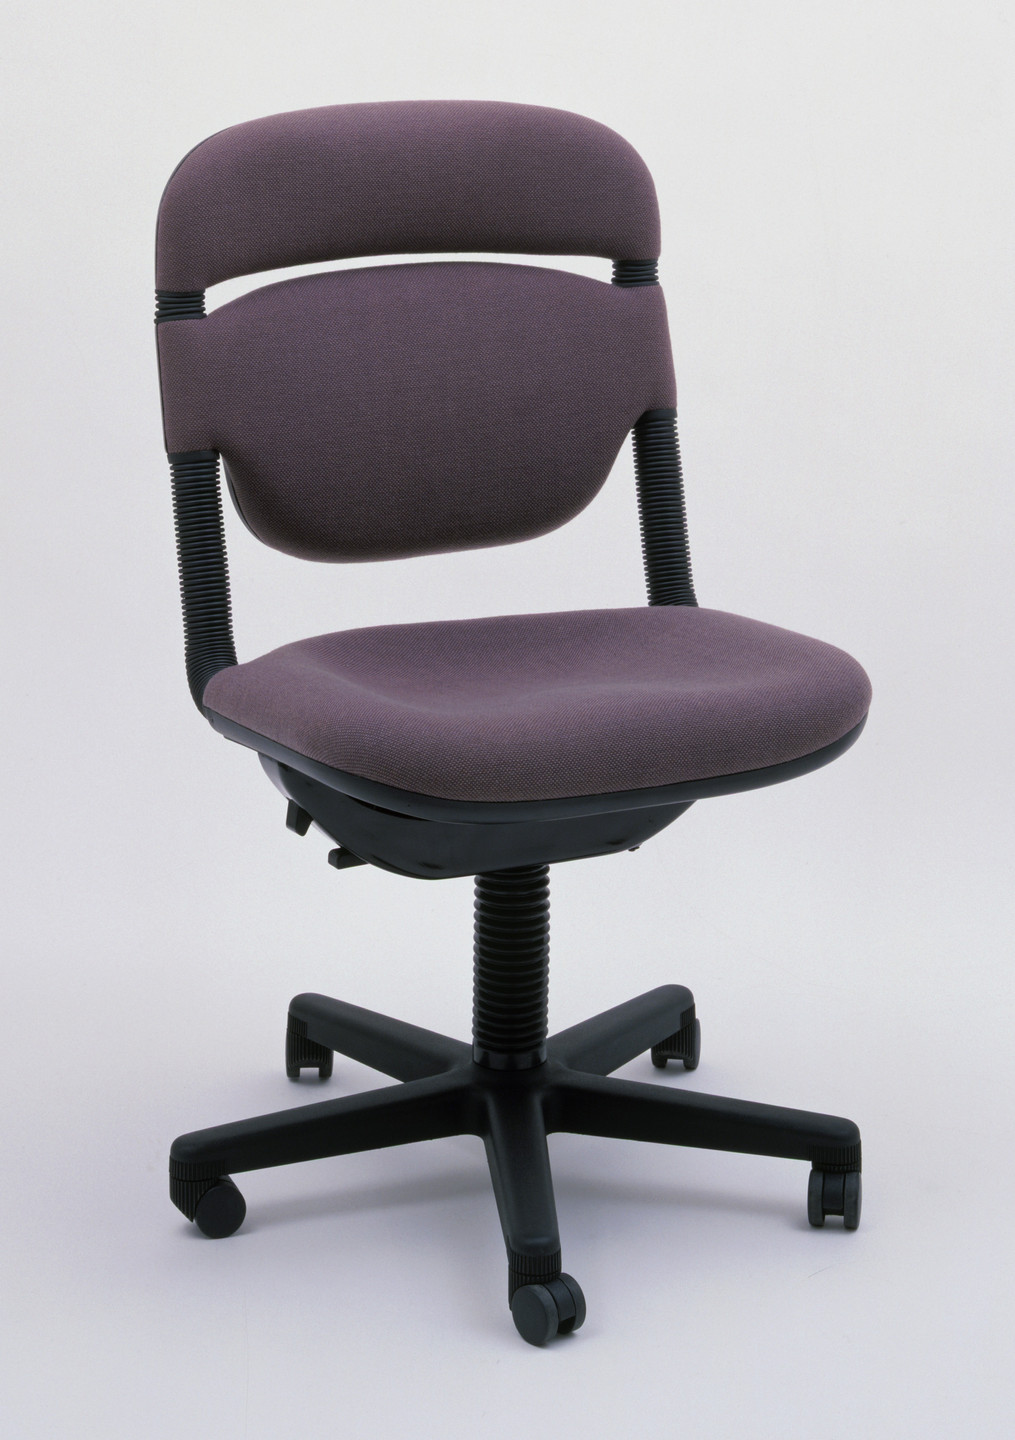 Emilio Ambasz, Giancarlo Piretti. Vertebra Executive's Chair. 1975